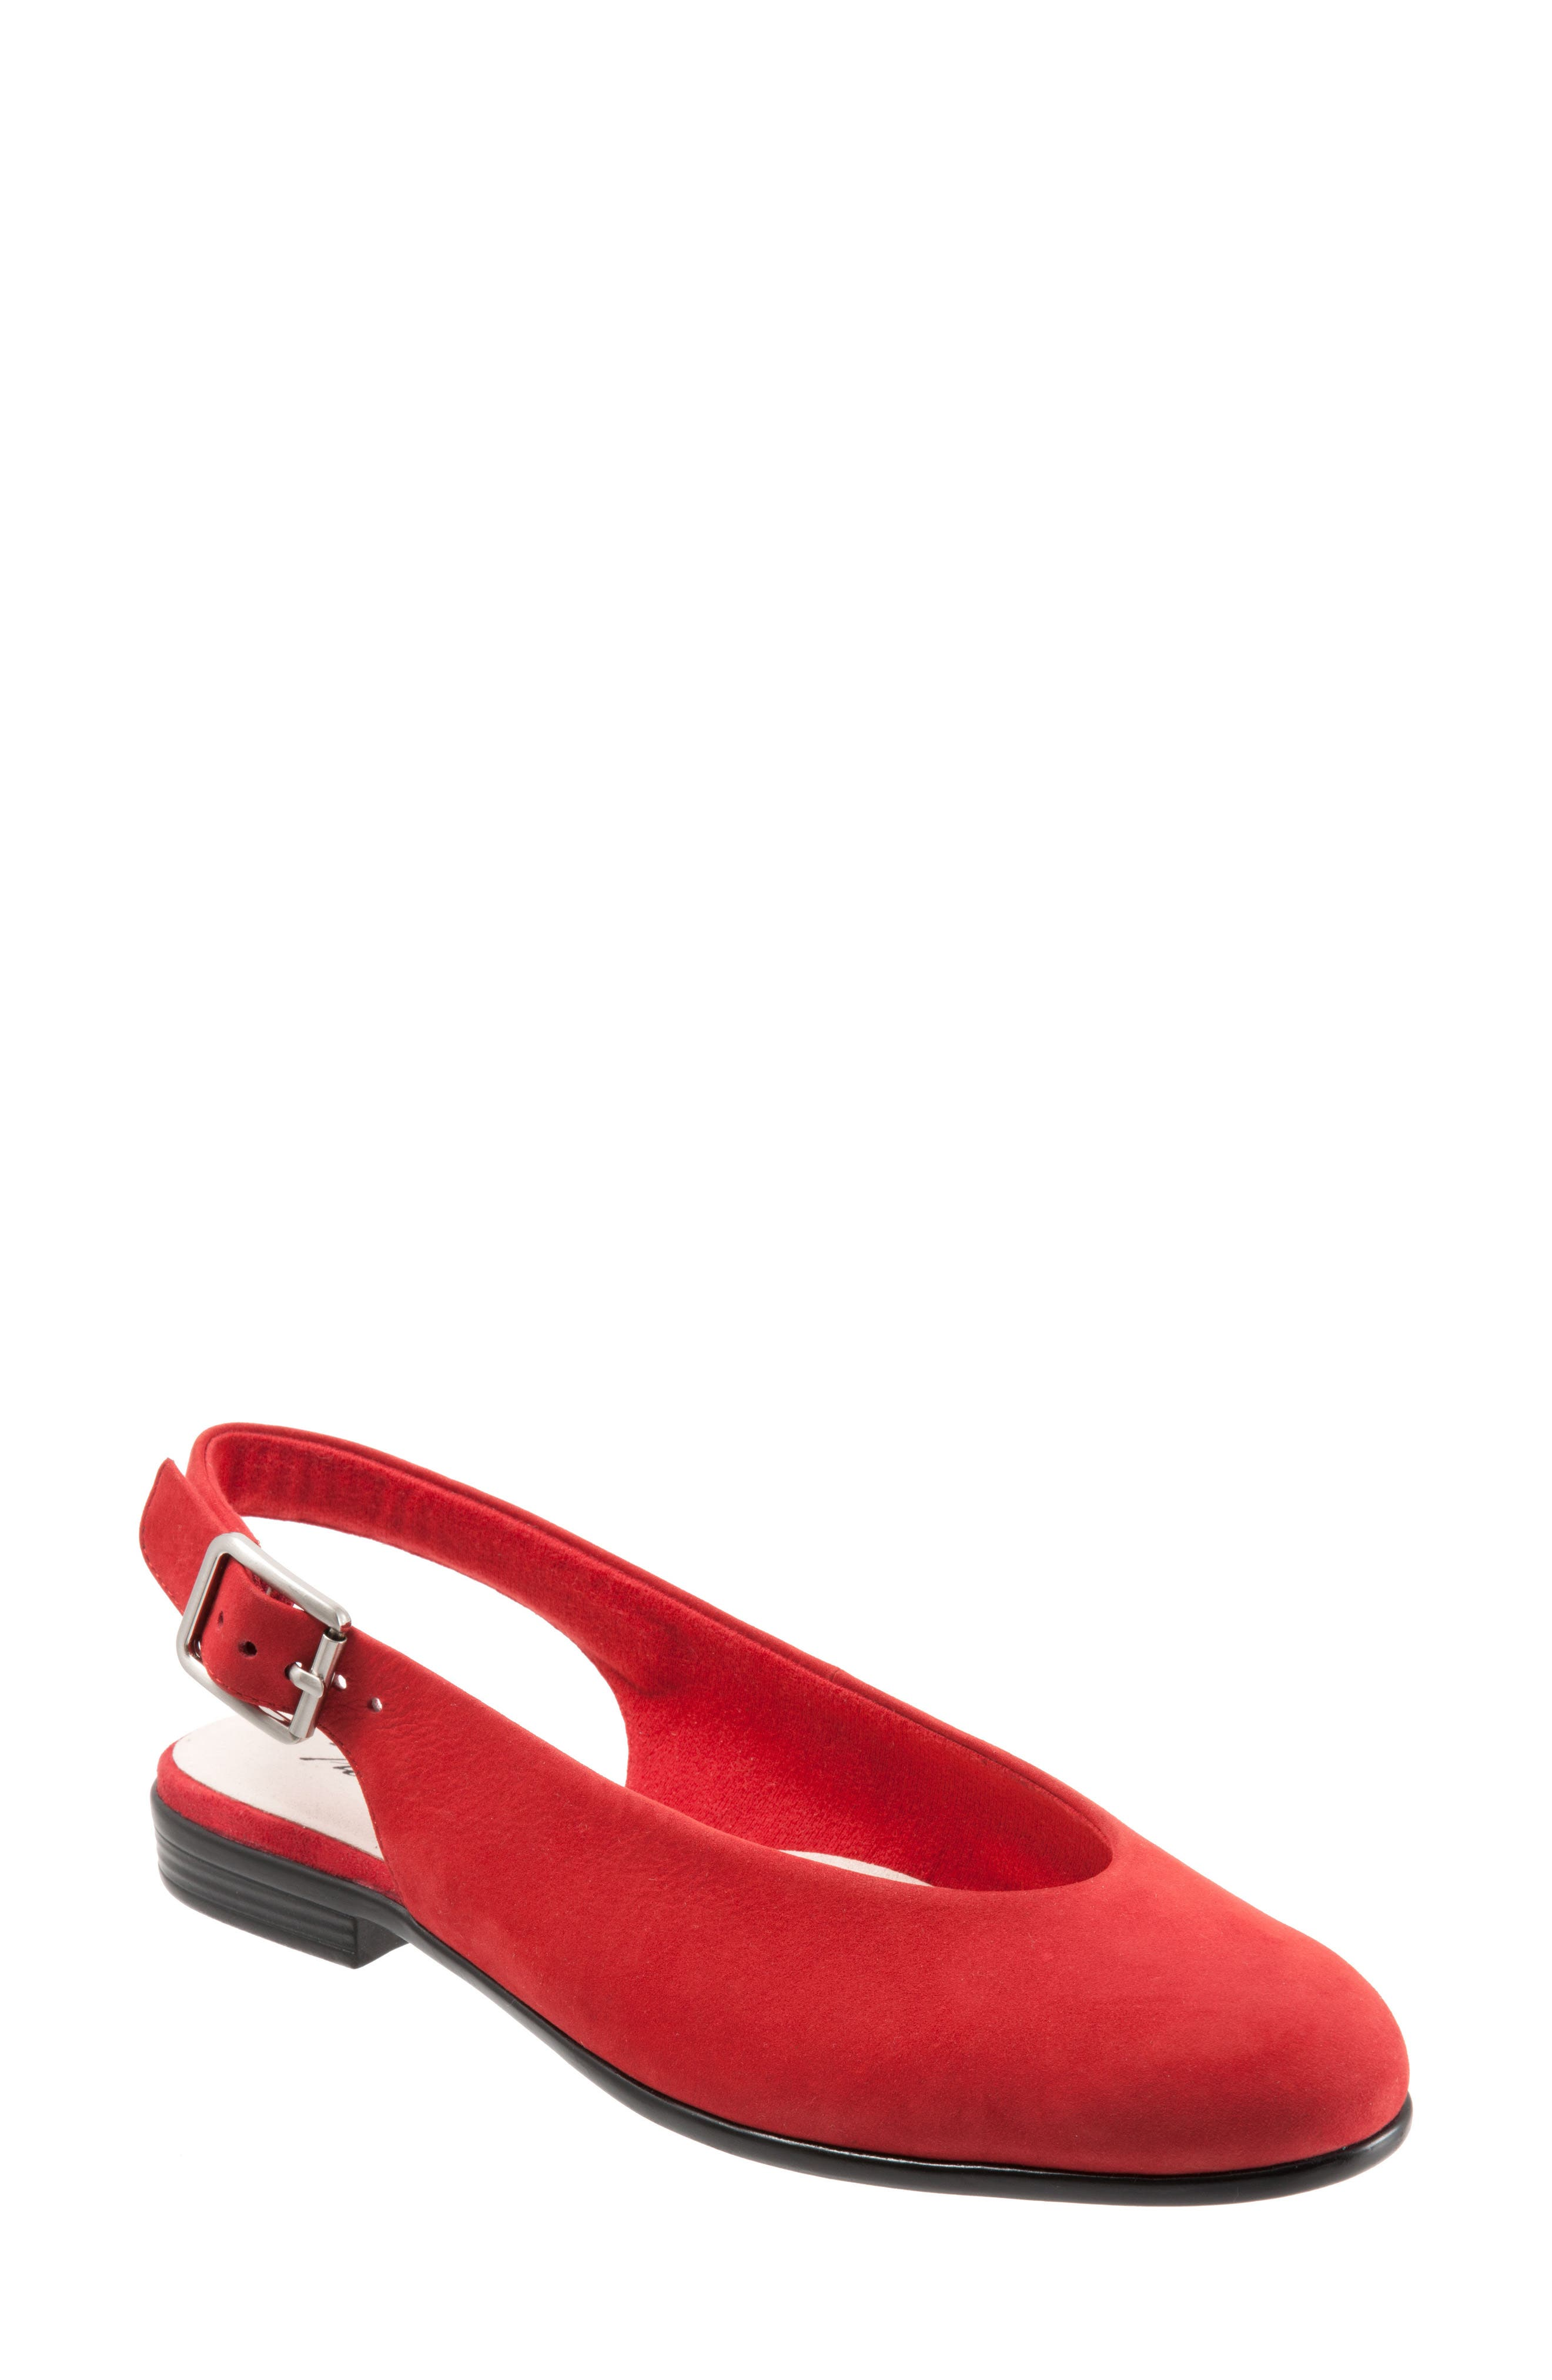 Alice Flat,                             Main thumbnail 1, color,                             RED SUEDE